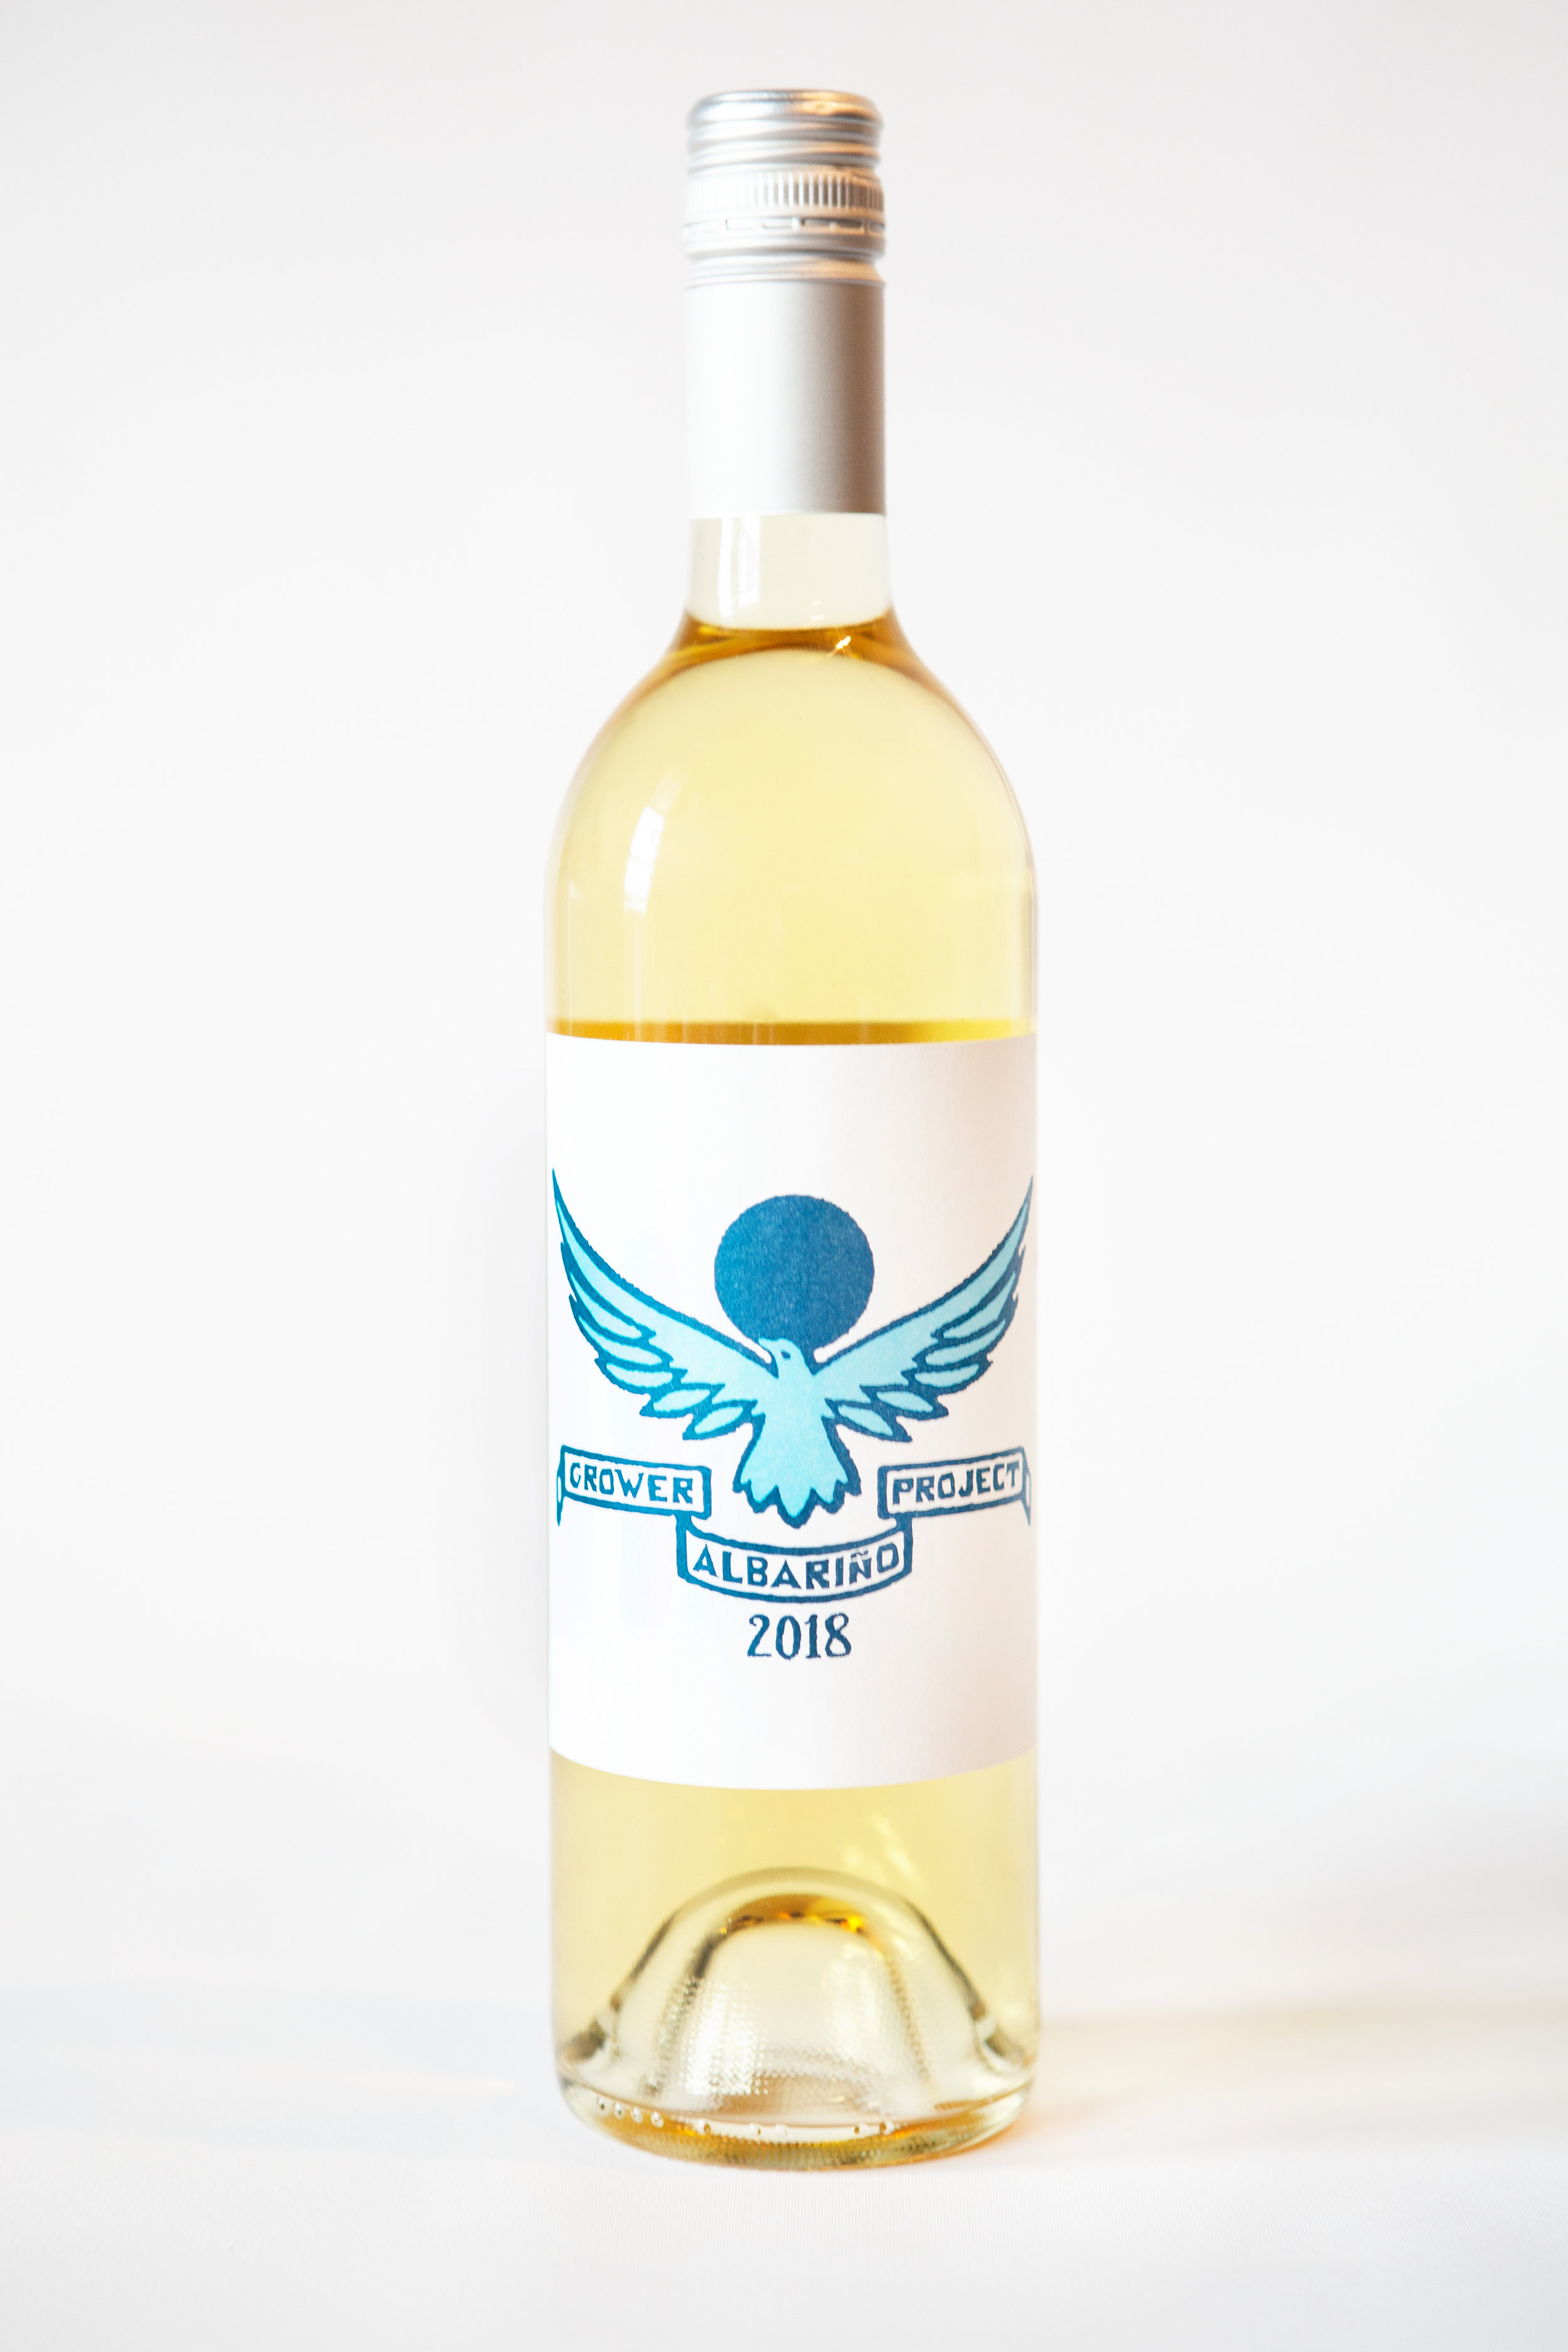 Grower project Albariño texas wine for the people.jpg